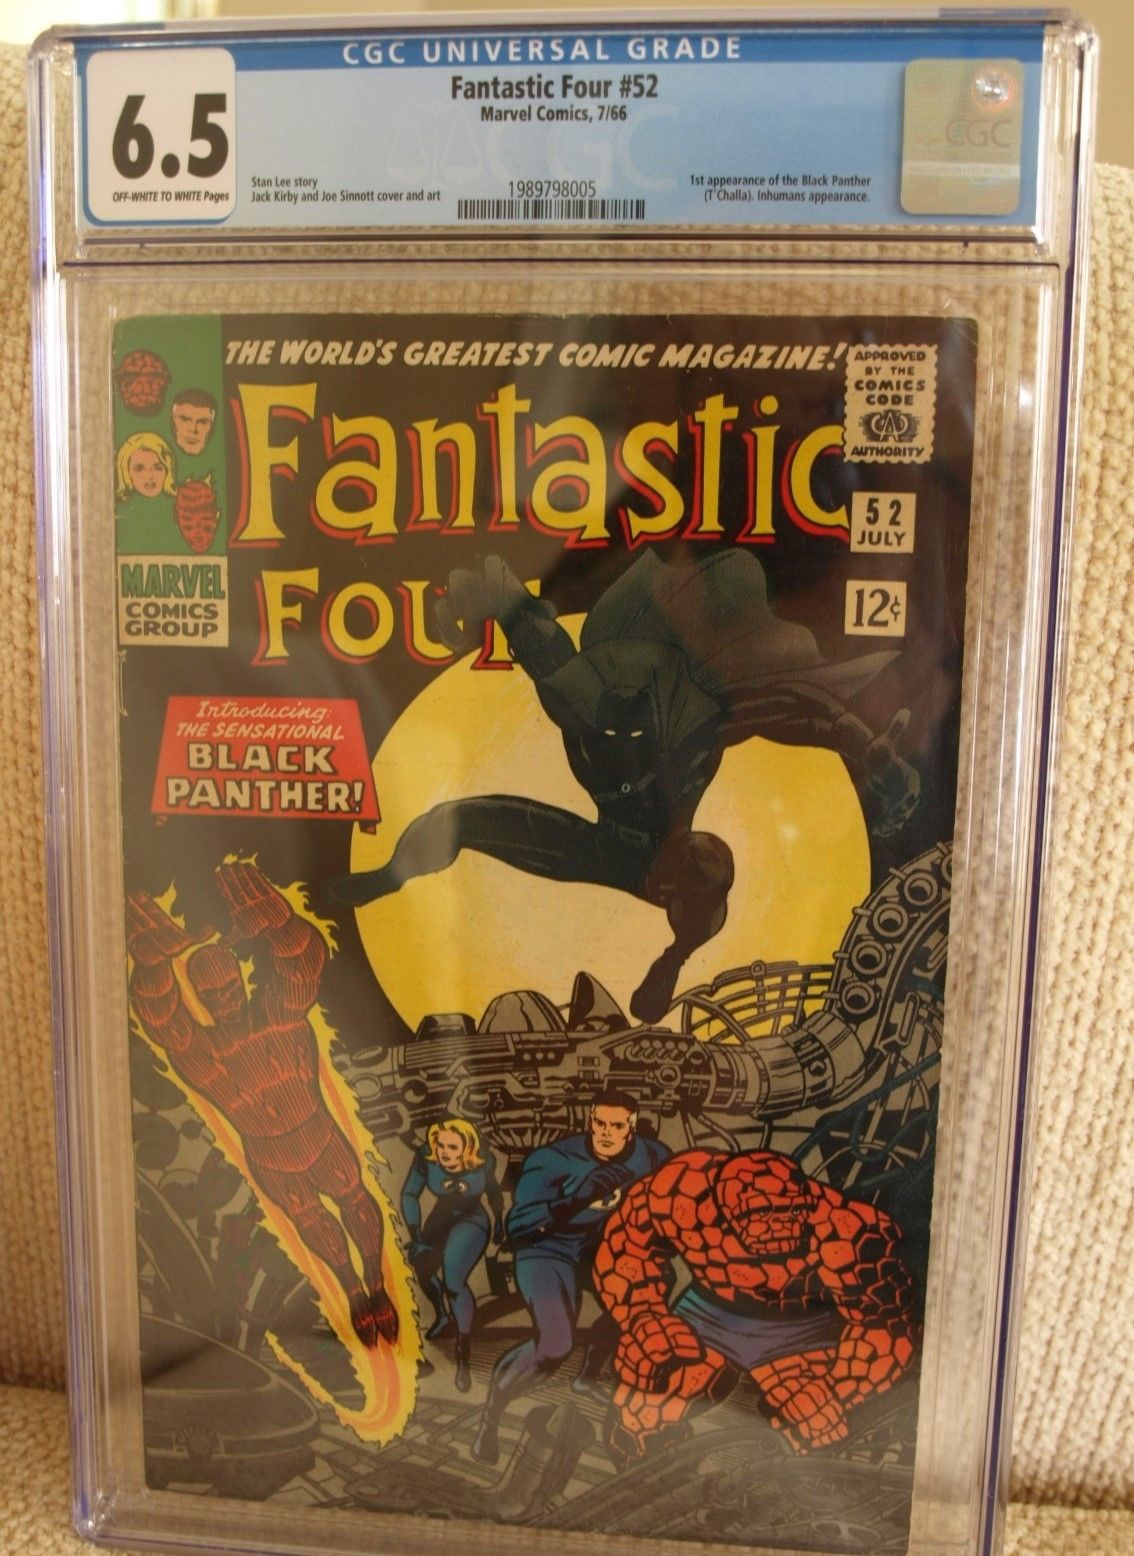 Fantastic Four #52 - CGC 6.5 FN+ - Marvel 1966 - FIRST Appearance Black Panther